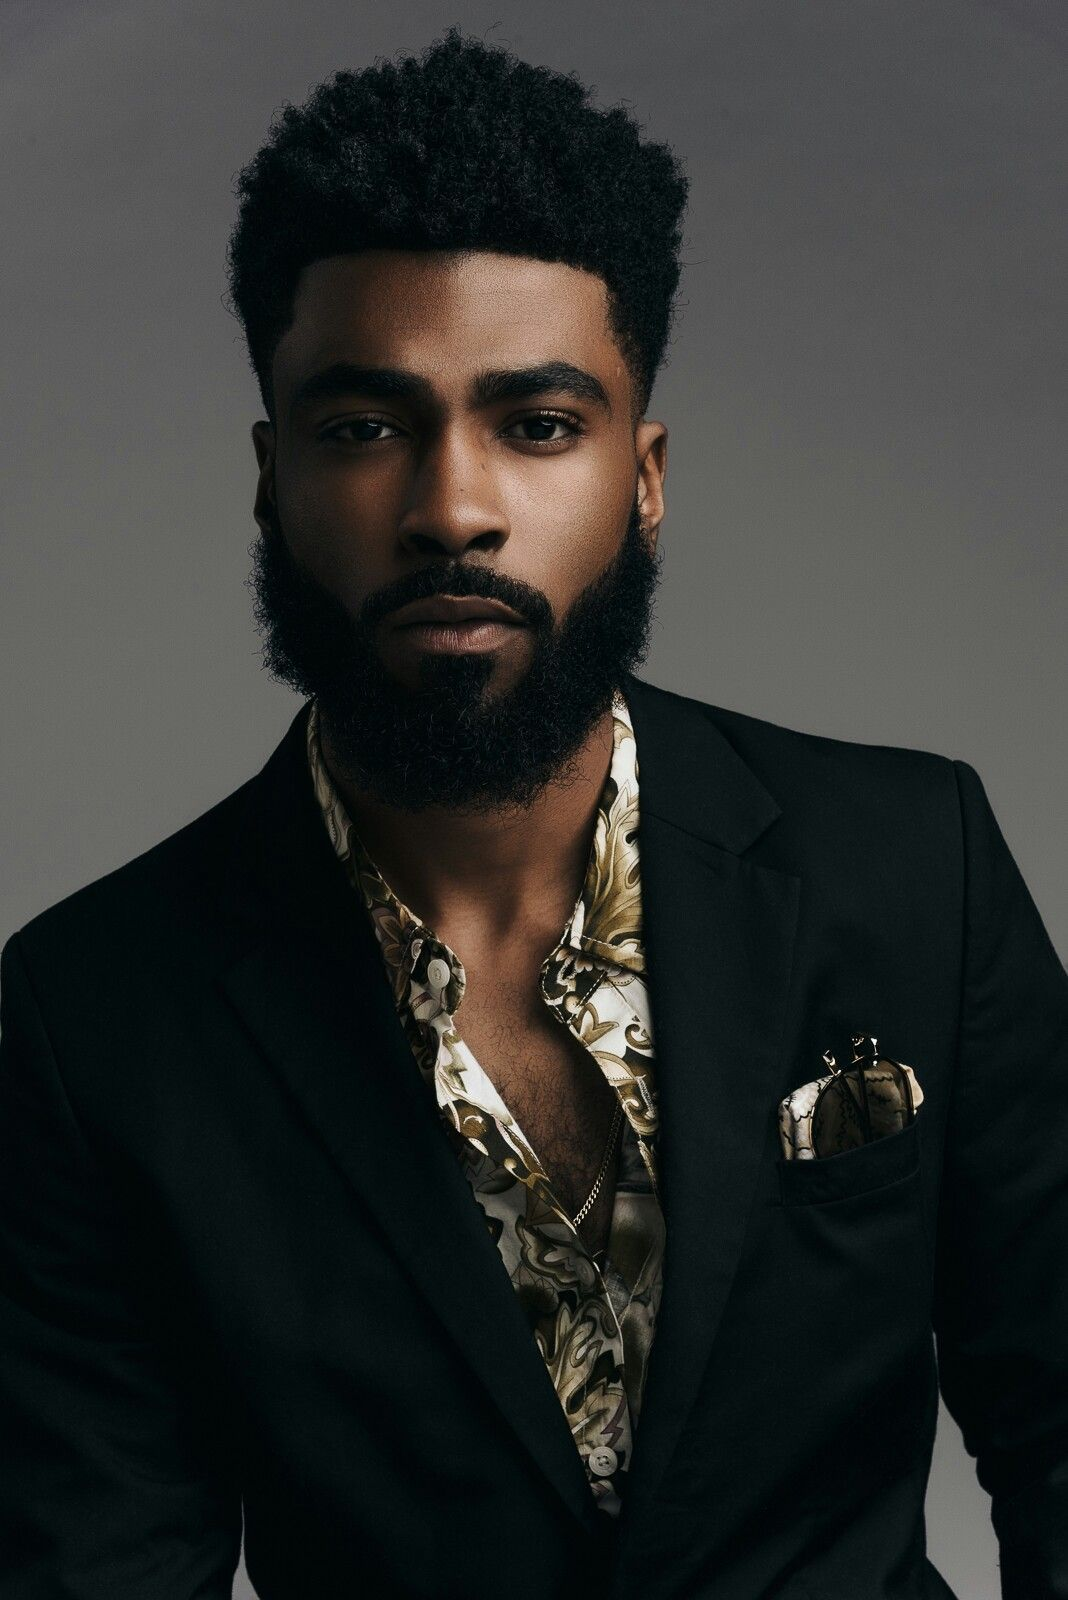 Fade haircuts for black men pin by briana avalos on photography  intense portraiture